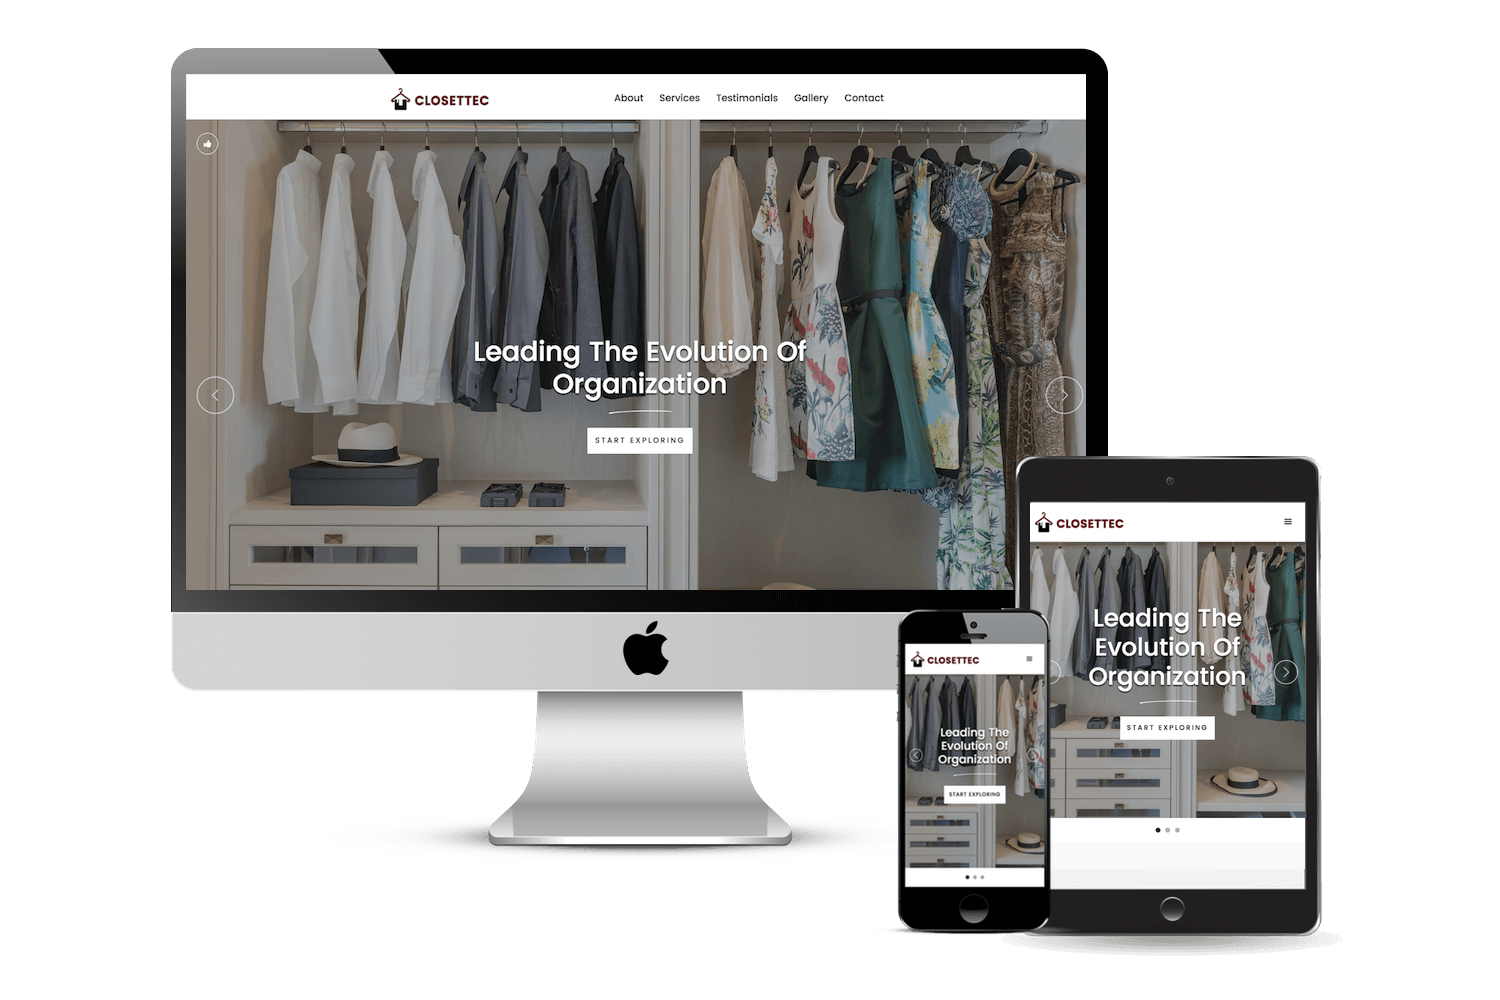 Image of responsive web design case study by Quetra Creative for Closettec Ecosystem